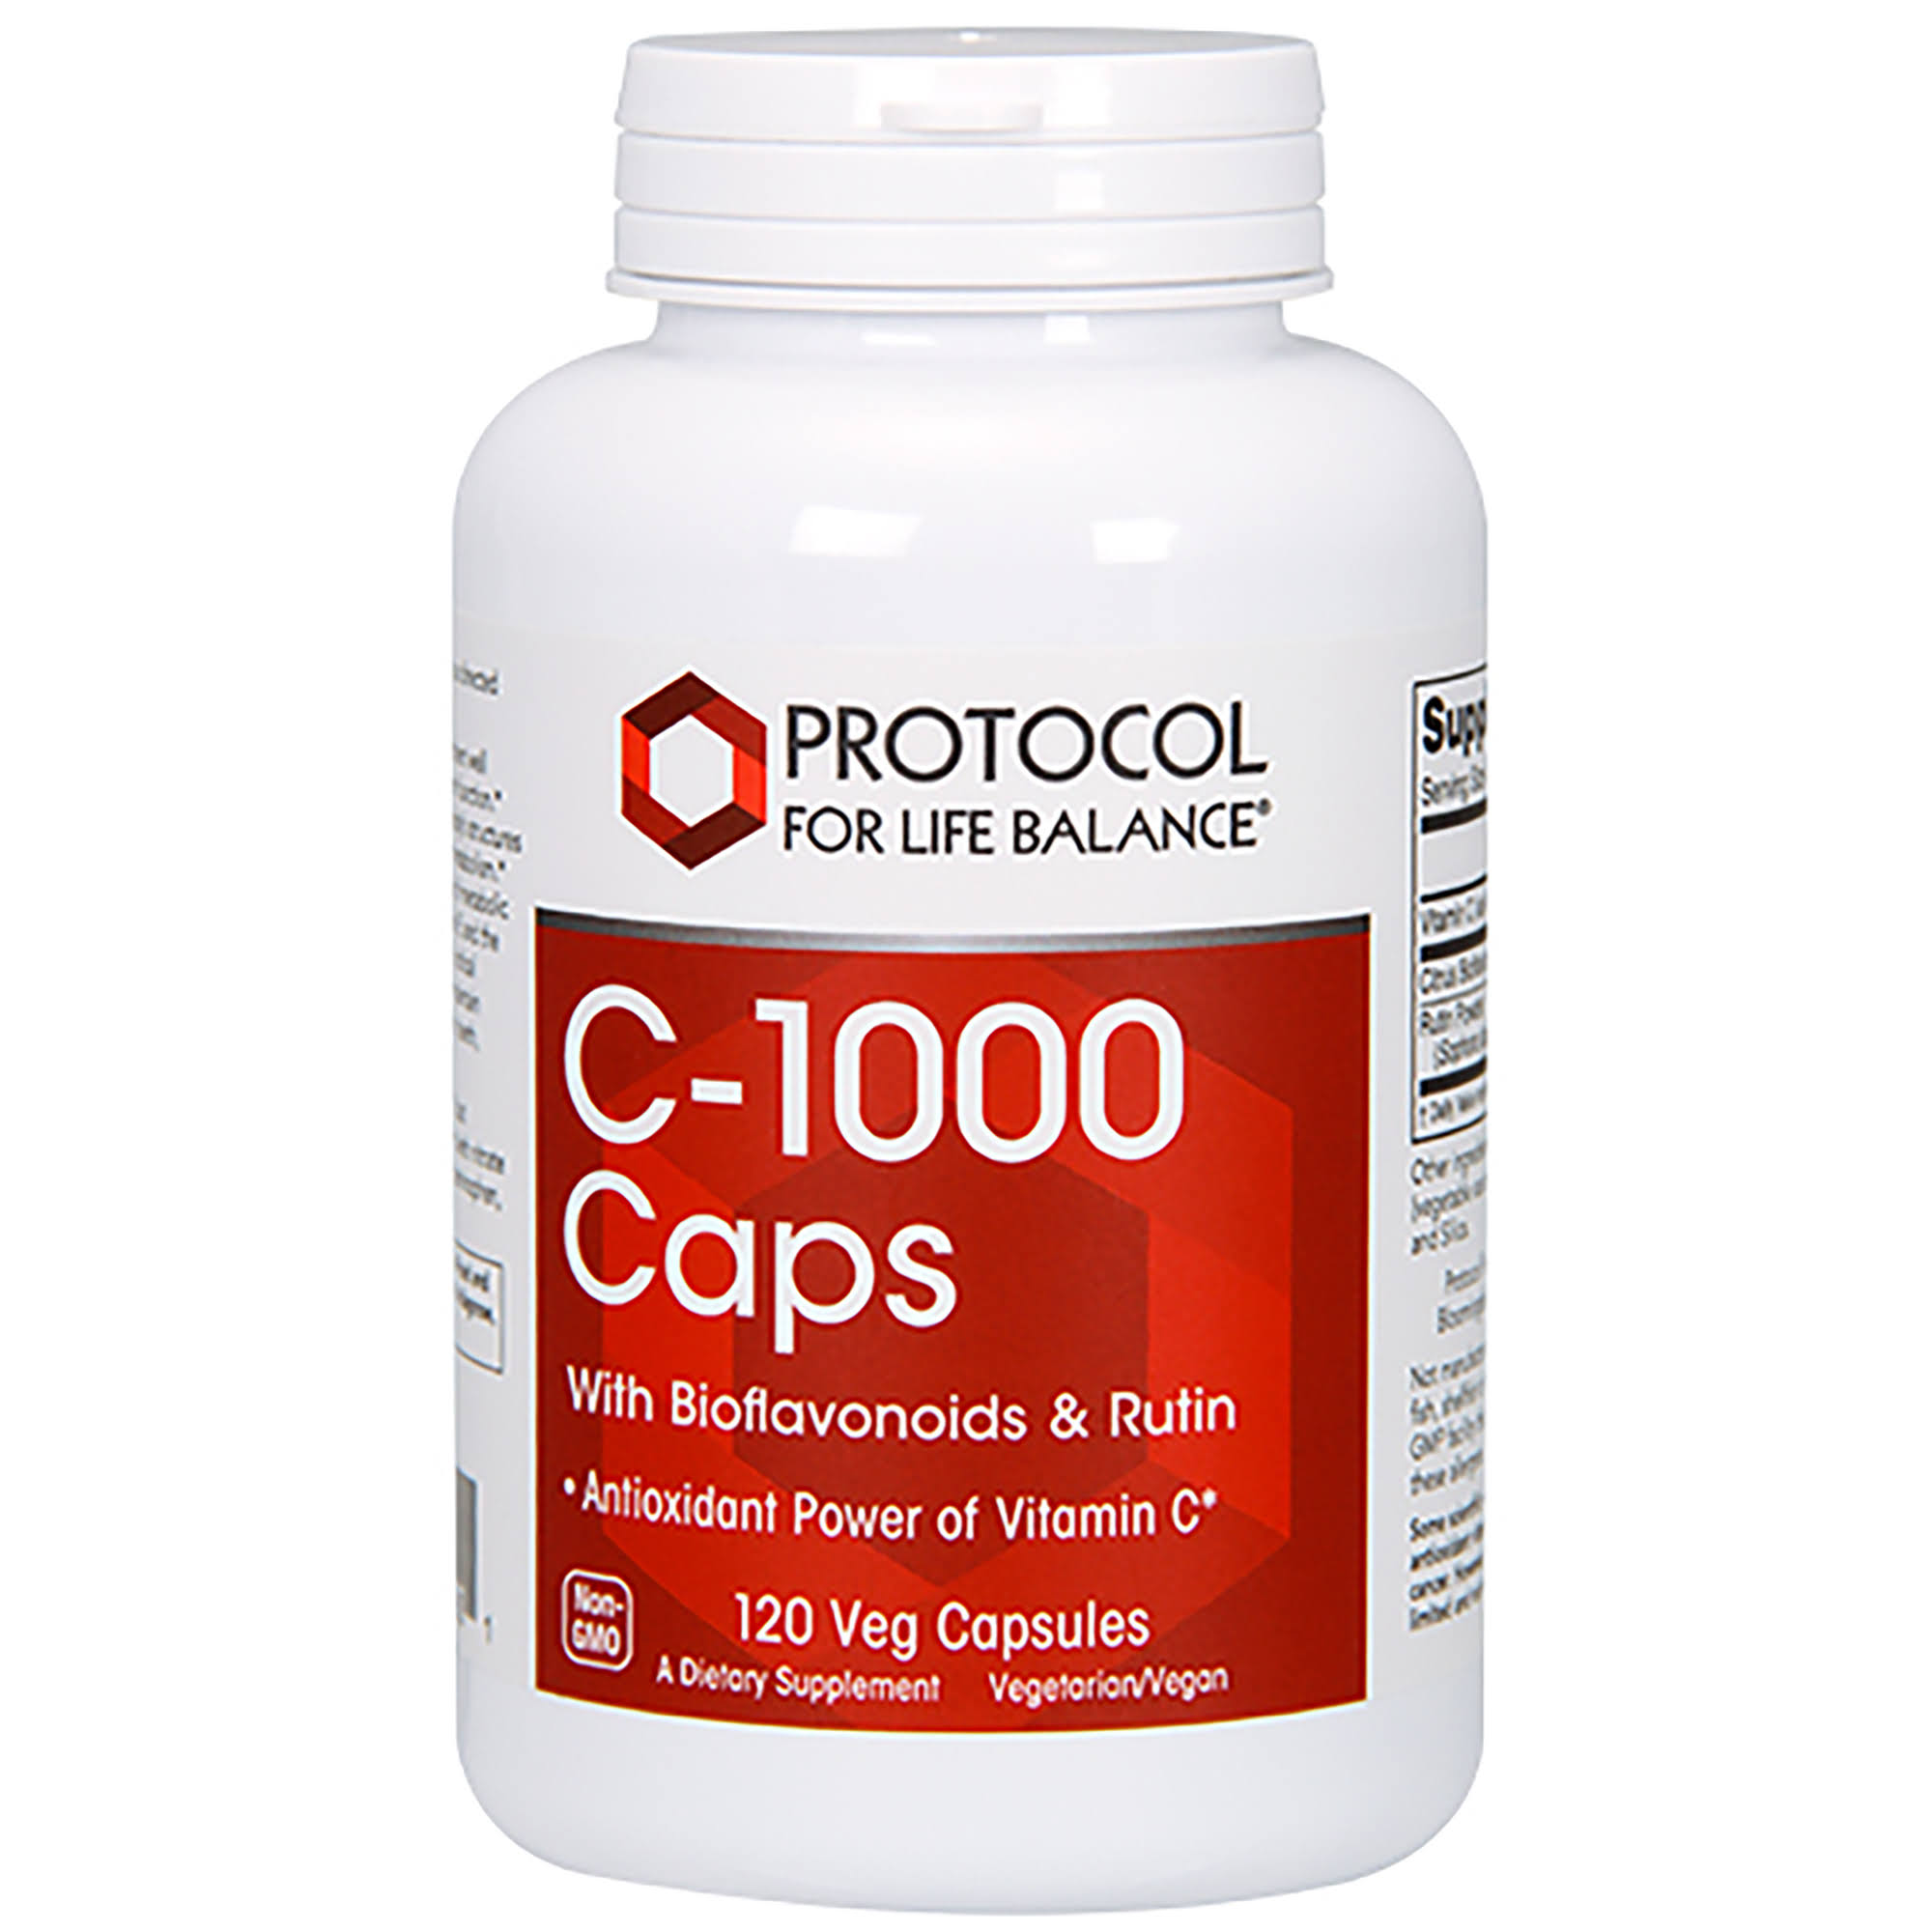 Protocol for Life Balance C-1000 - 120 Capsules